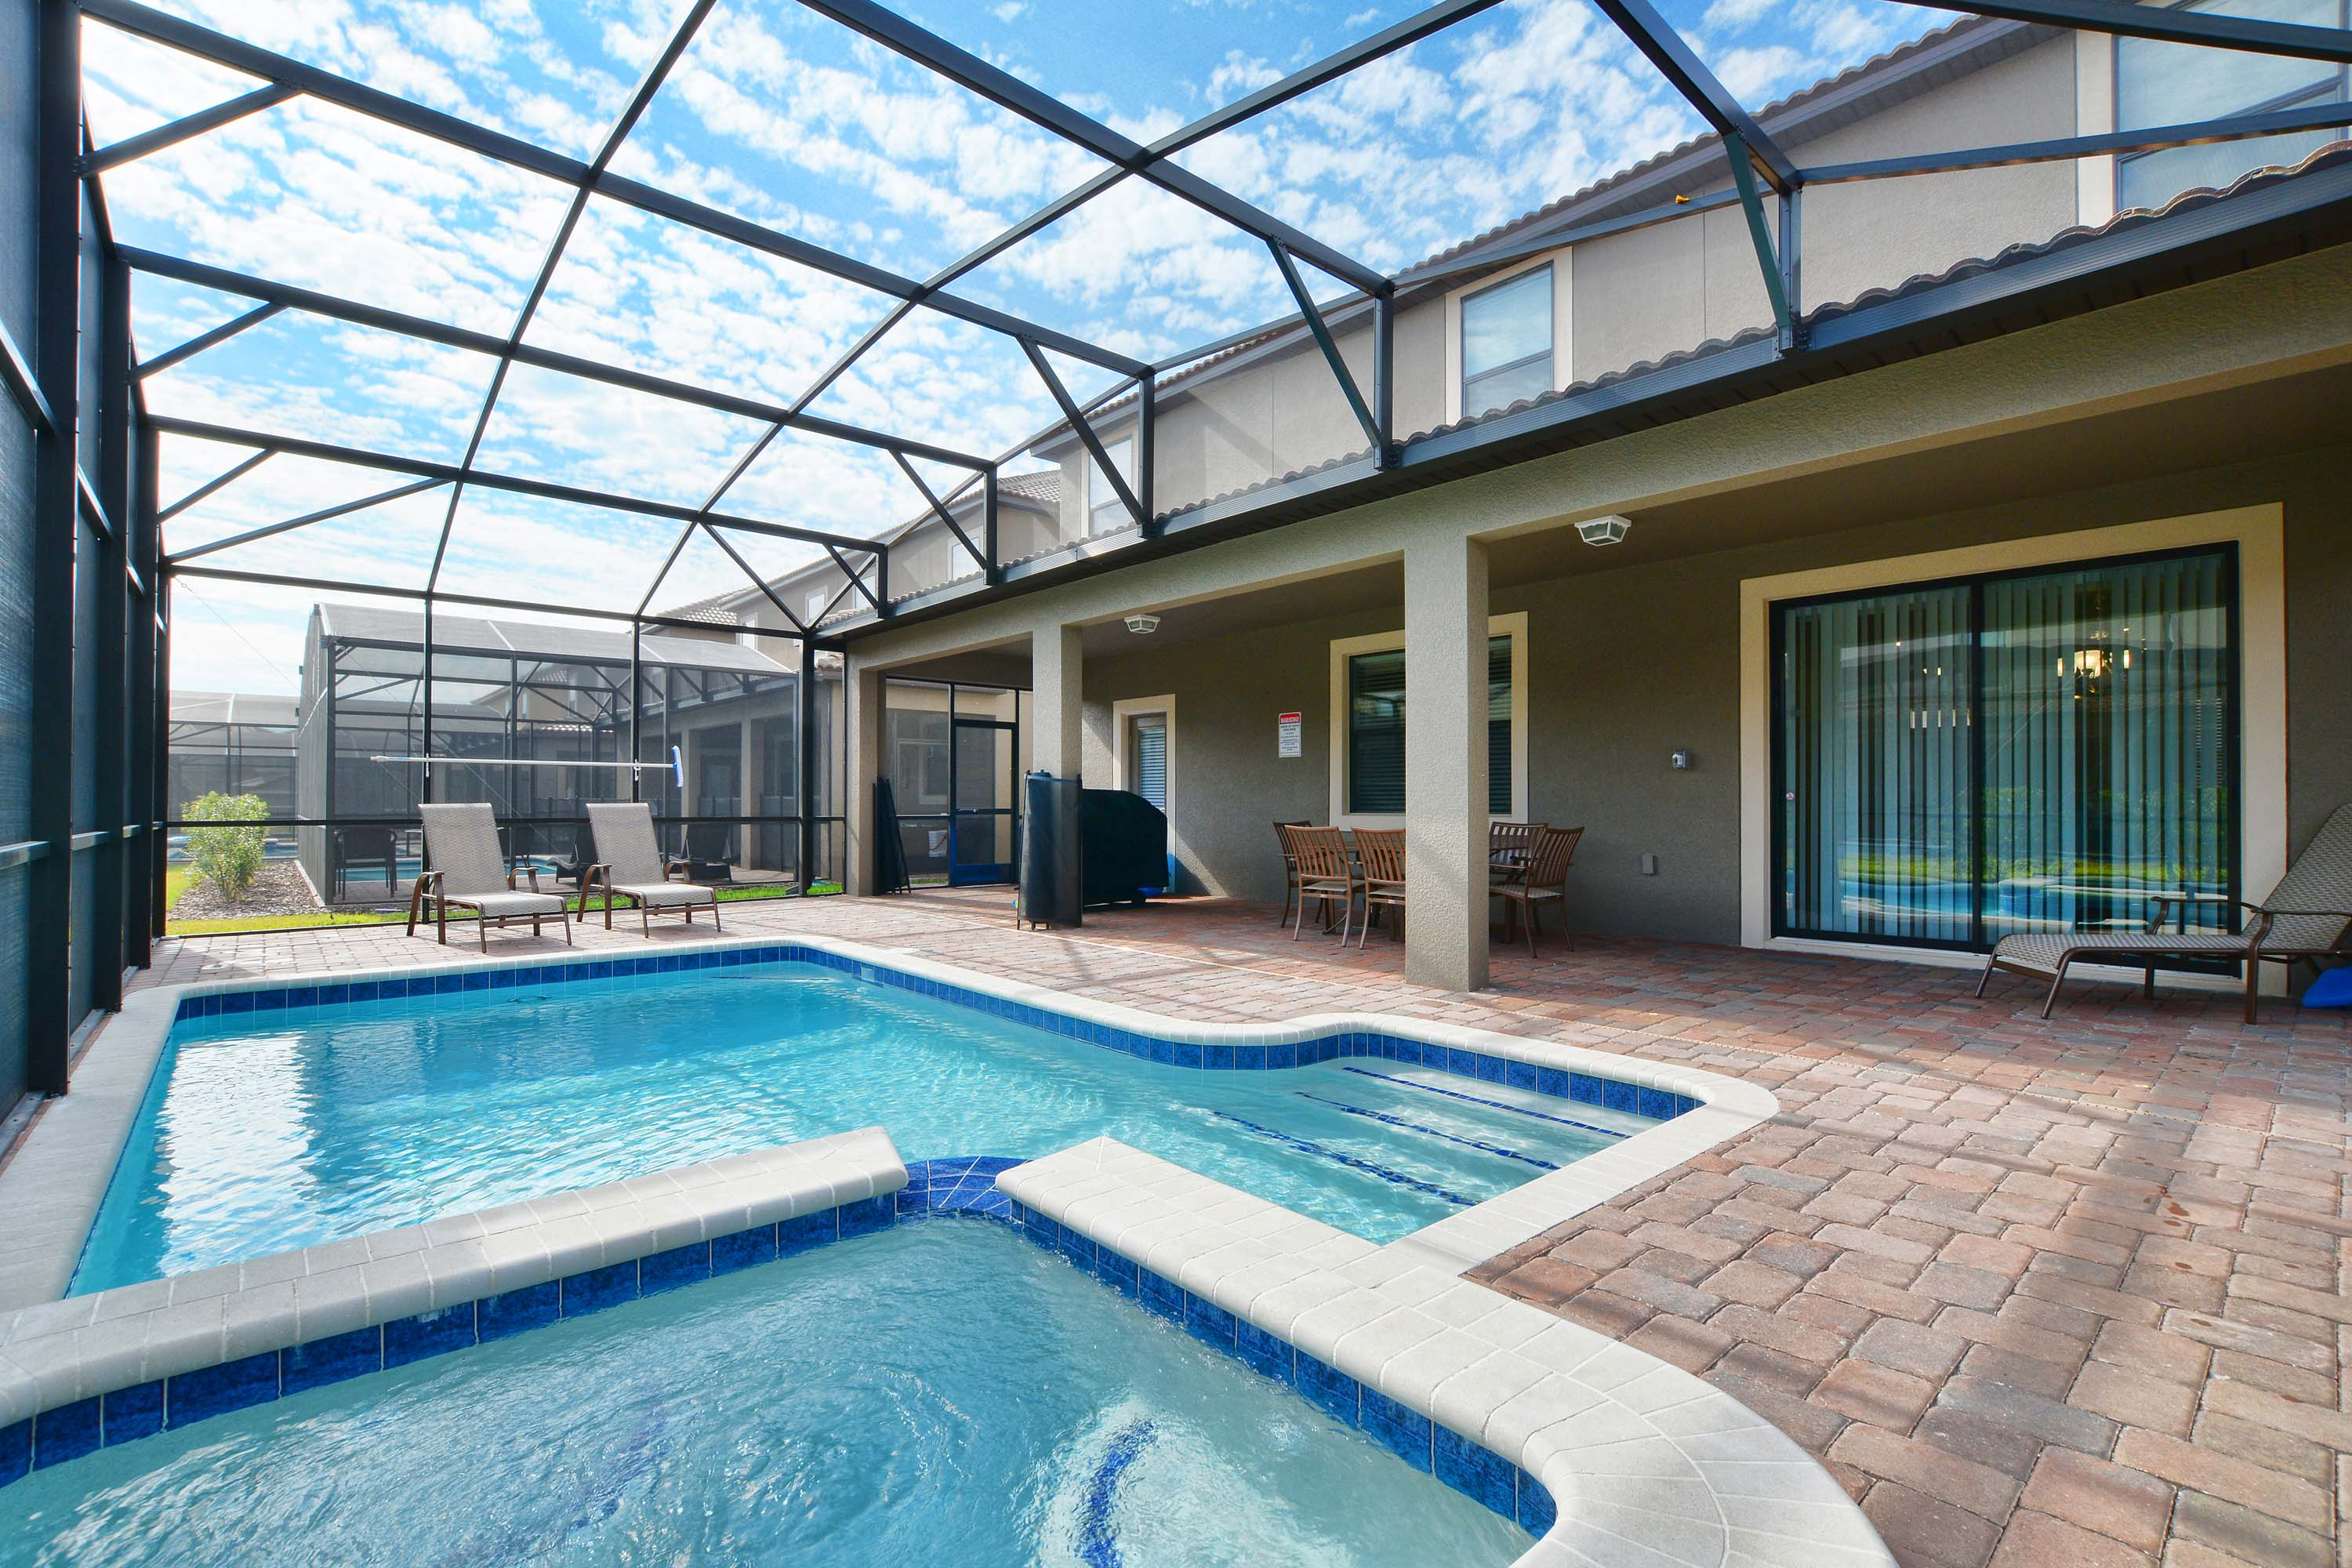 Vacation Homes For Rent In Champions Gate